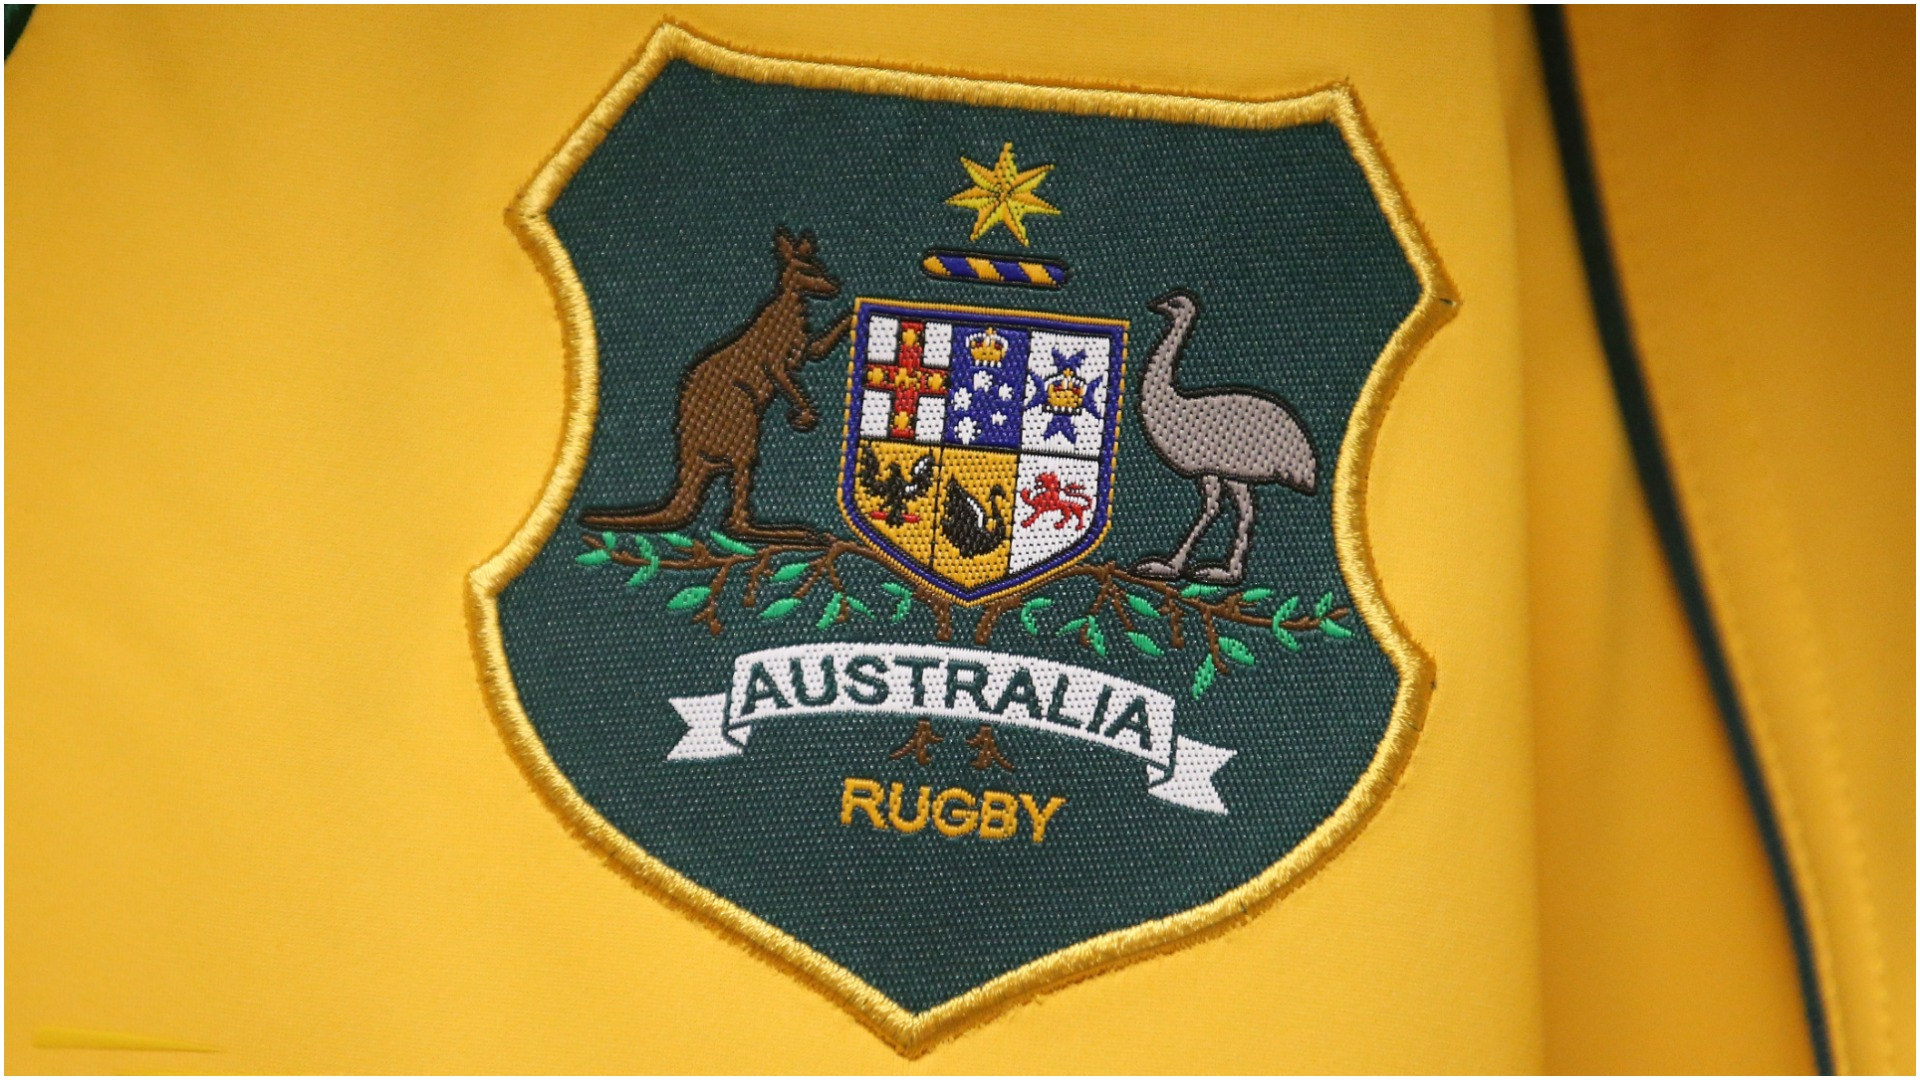 Rugby Australia No Record Of Wallabies Match Fixing